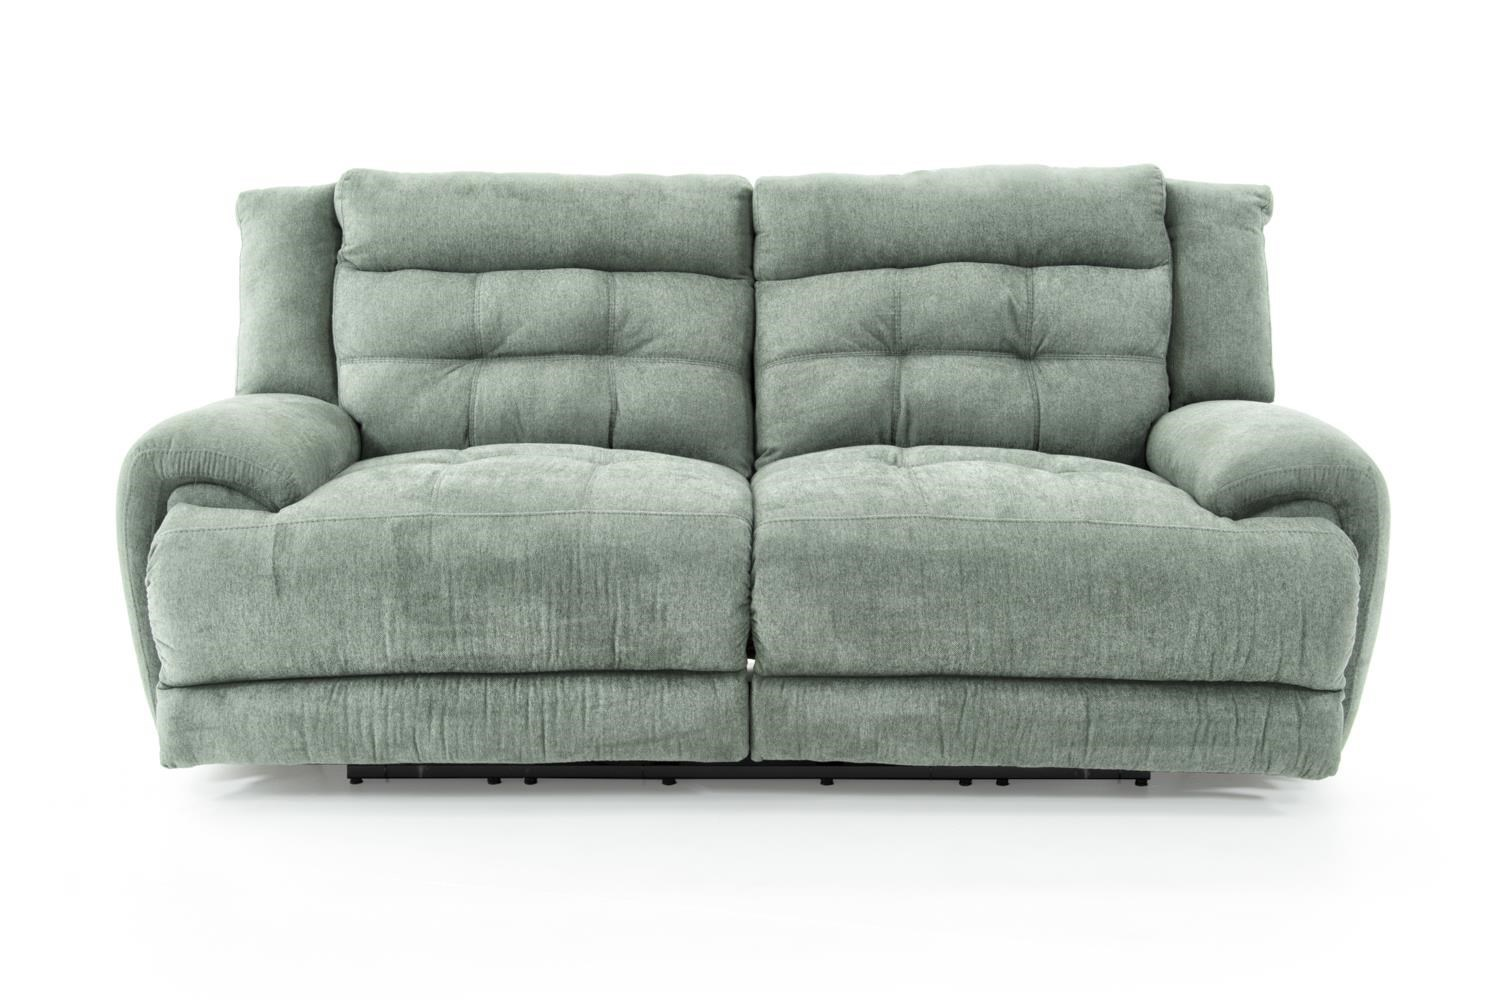 lane molly double reclining sofa dfs orbit 2 seater recliner summerlin traditional ...